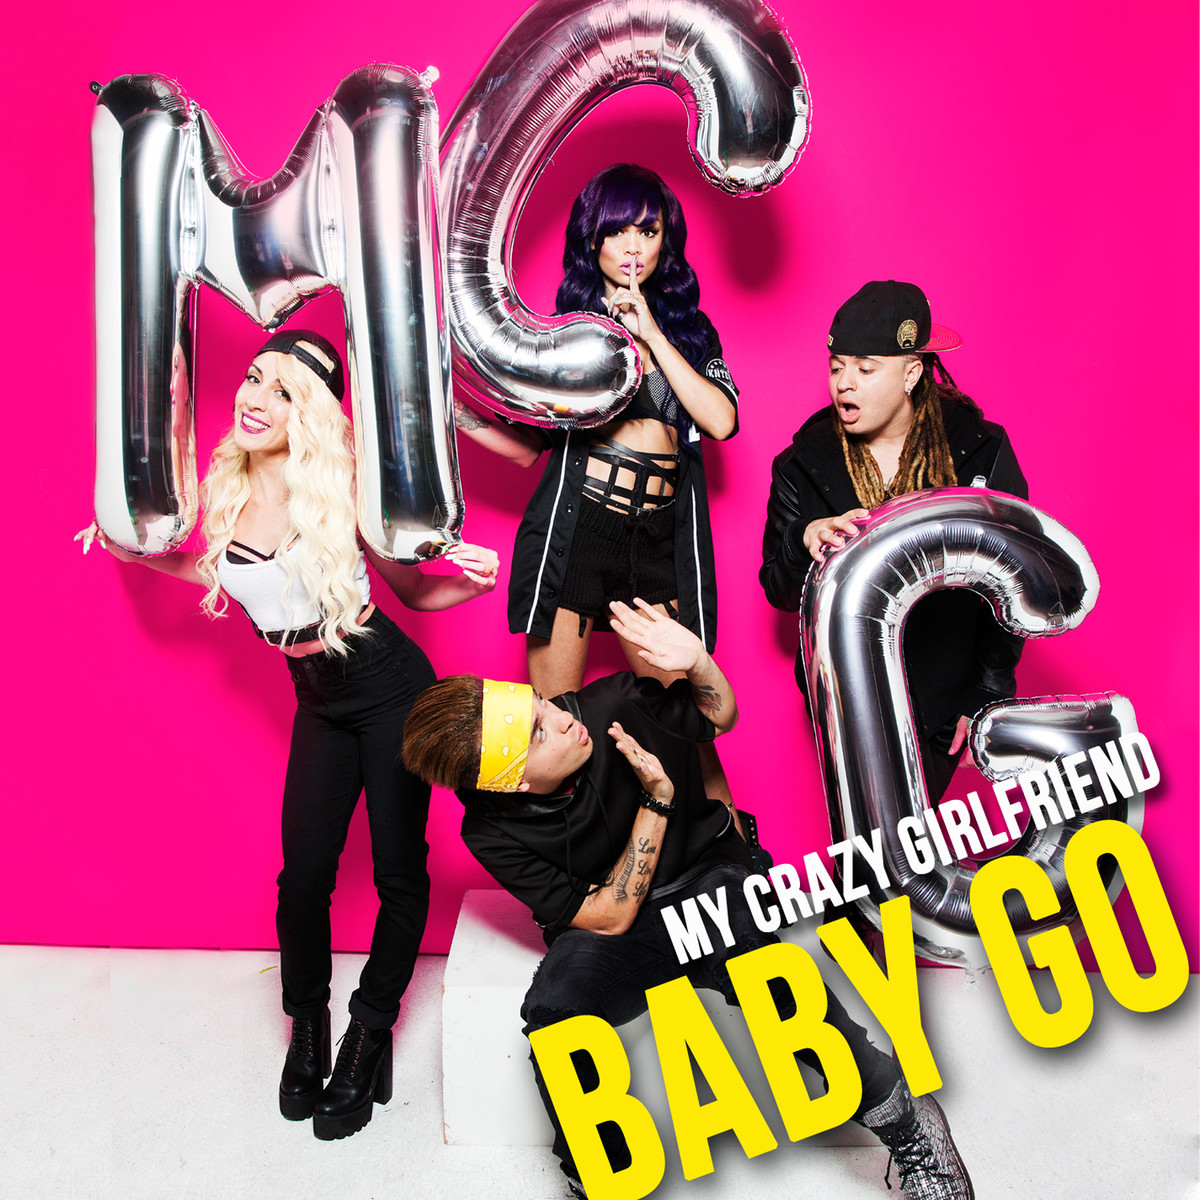 My-Crazy-Girlfriend-Baby-Go-2014 (1).png